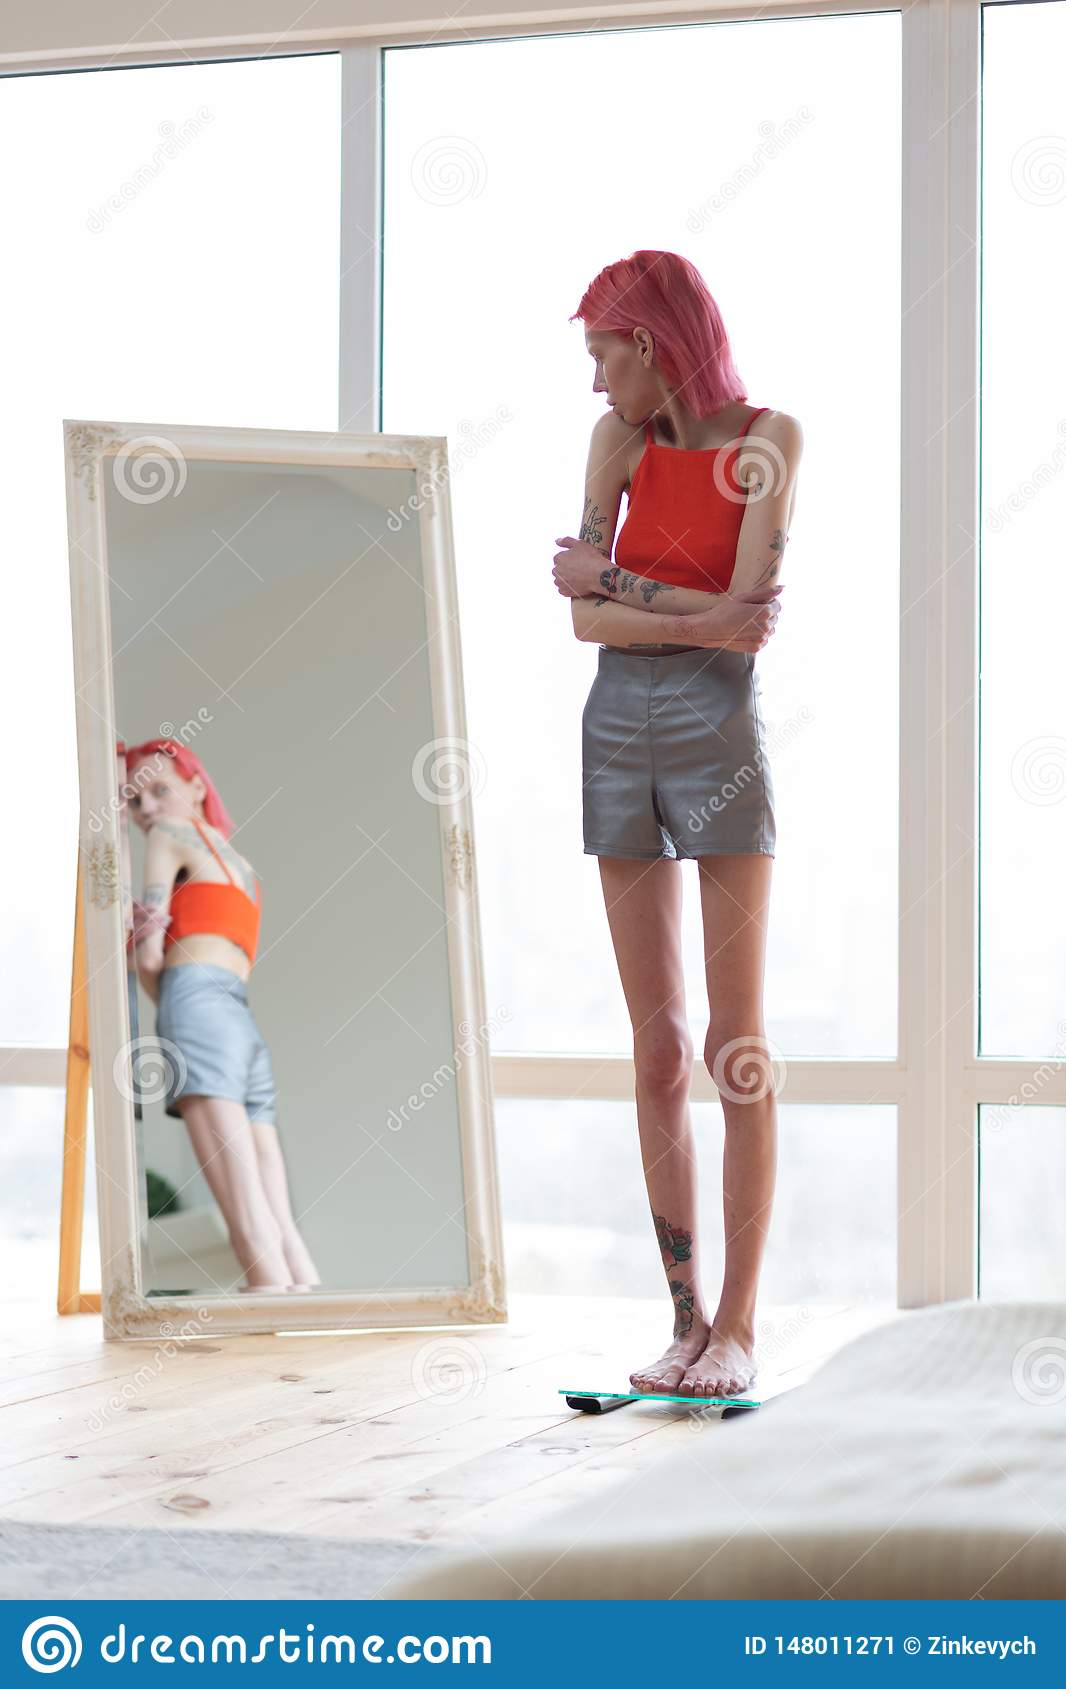 Skinny Unhealthy Woman Wearing Shorts And Top Looking Into